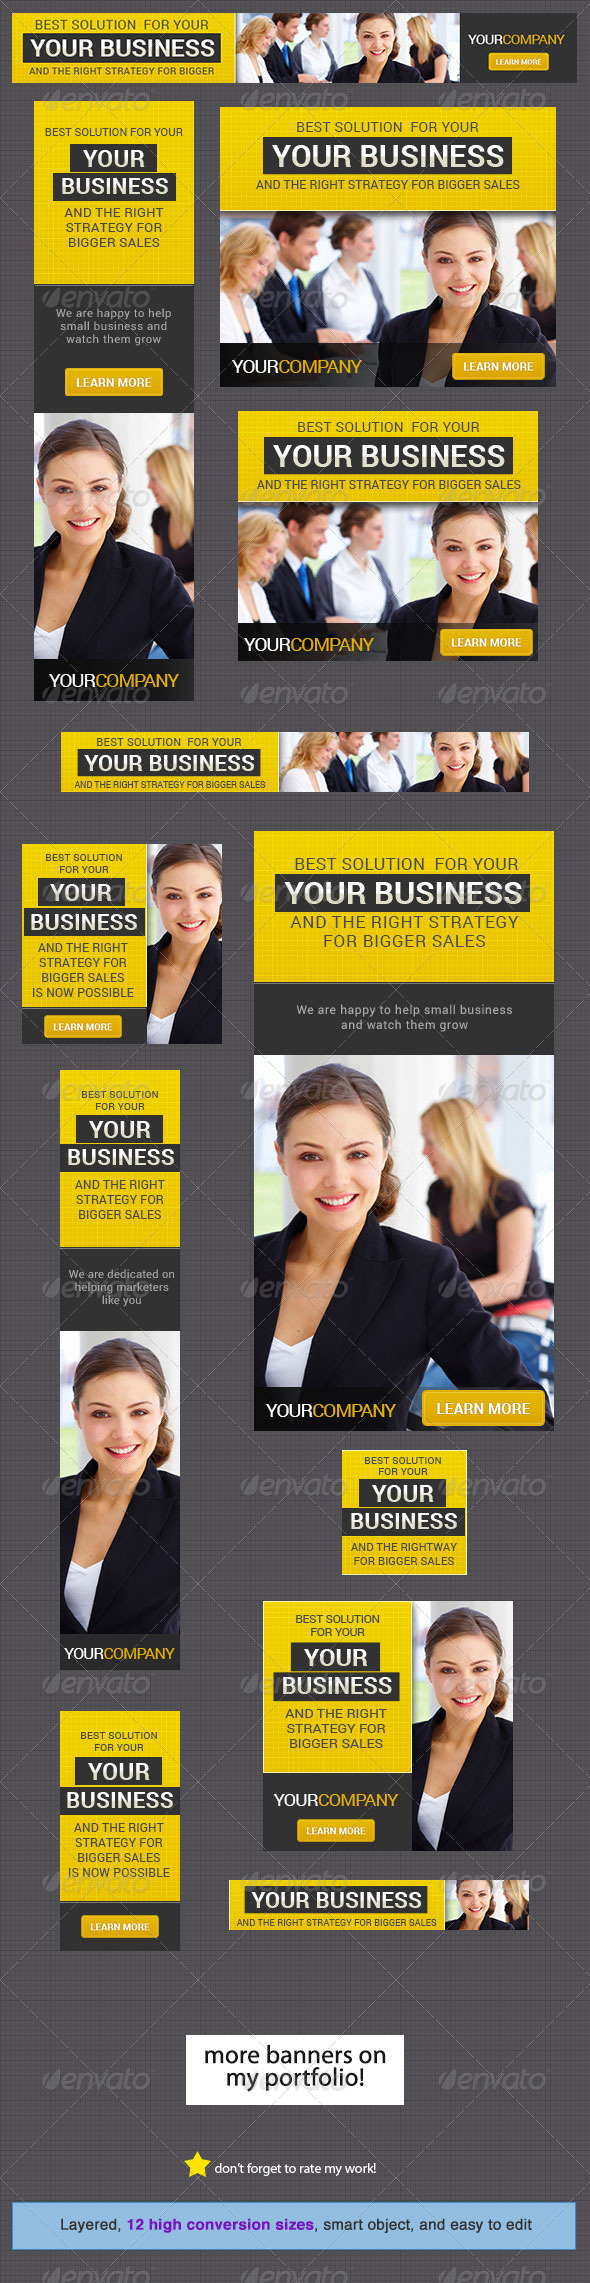 Corporate Banner Design Template 7 - Banners & Ads Web Elements